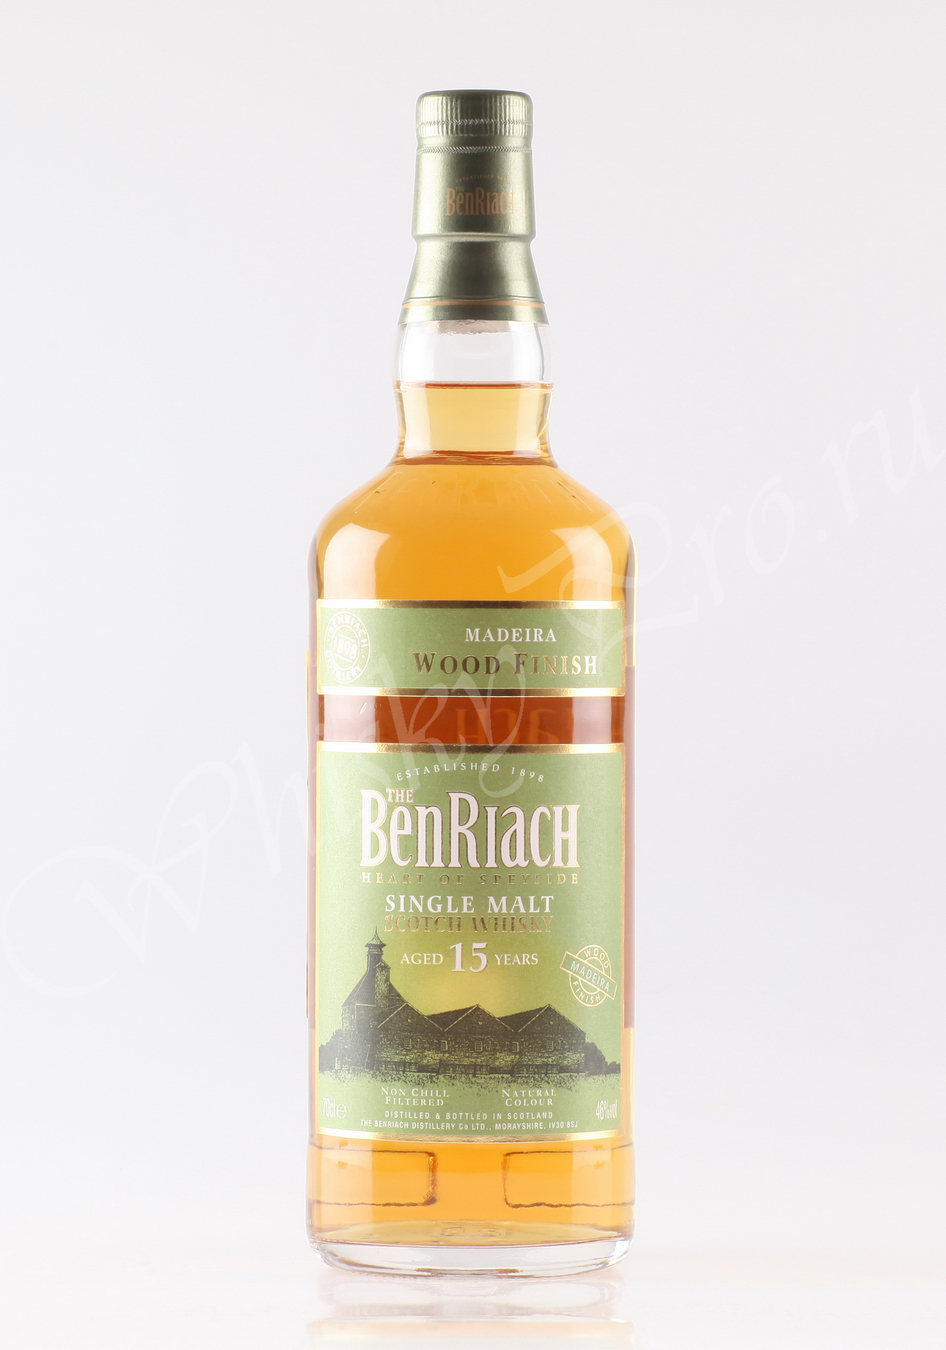 Benriach 15 years Madeira